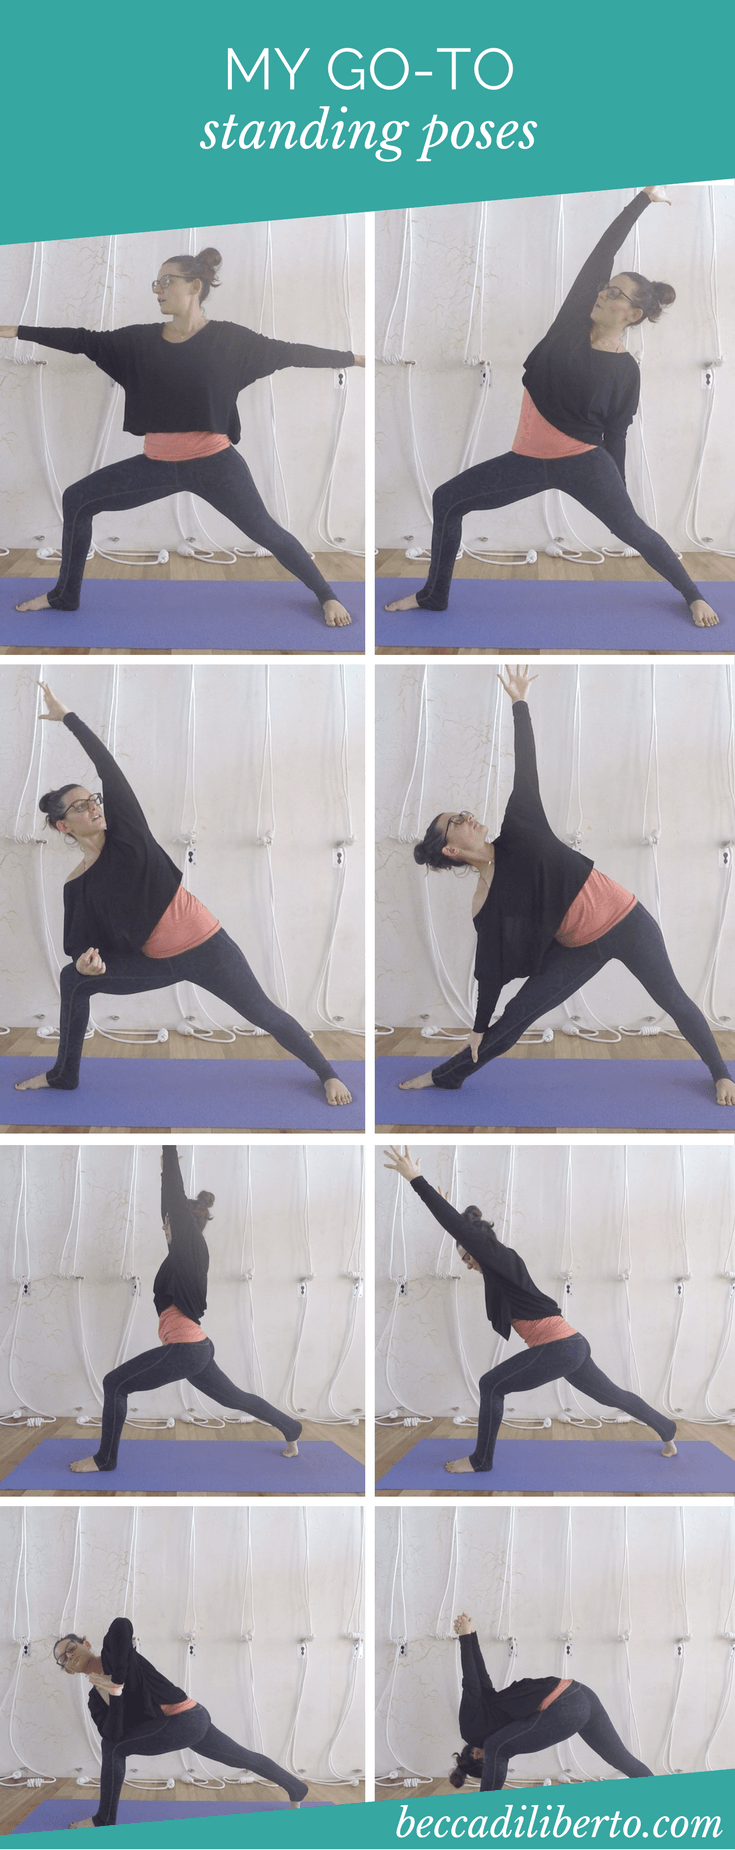 learn two easy-to-memorize standing pose sequences for your home yoga practice | click to watch the video